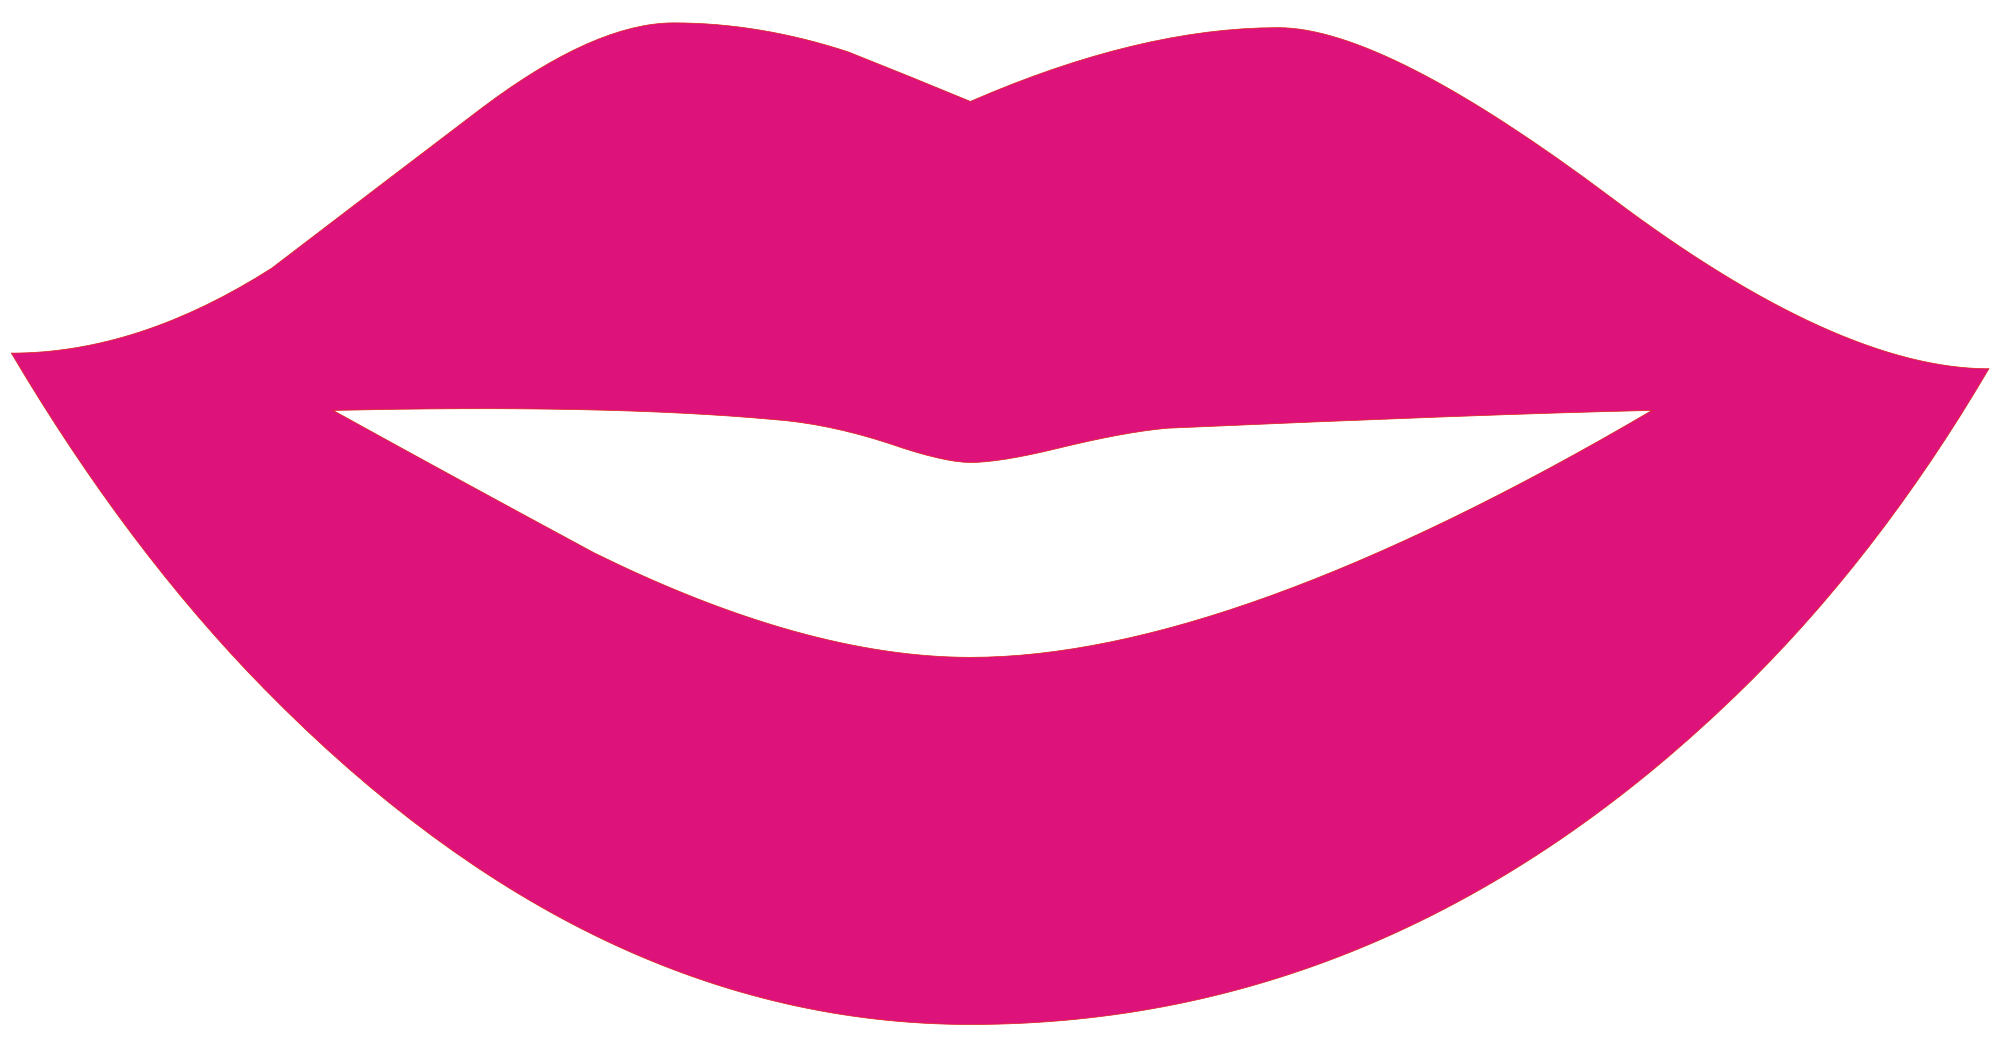 How big lips came. Lipstick clipart girly